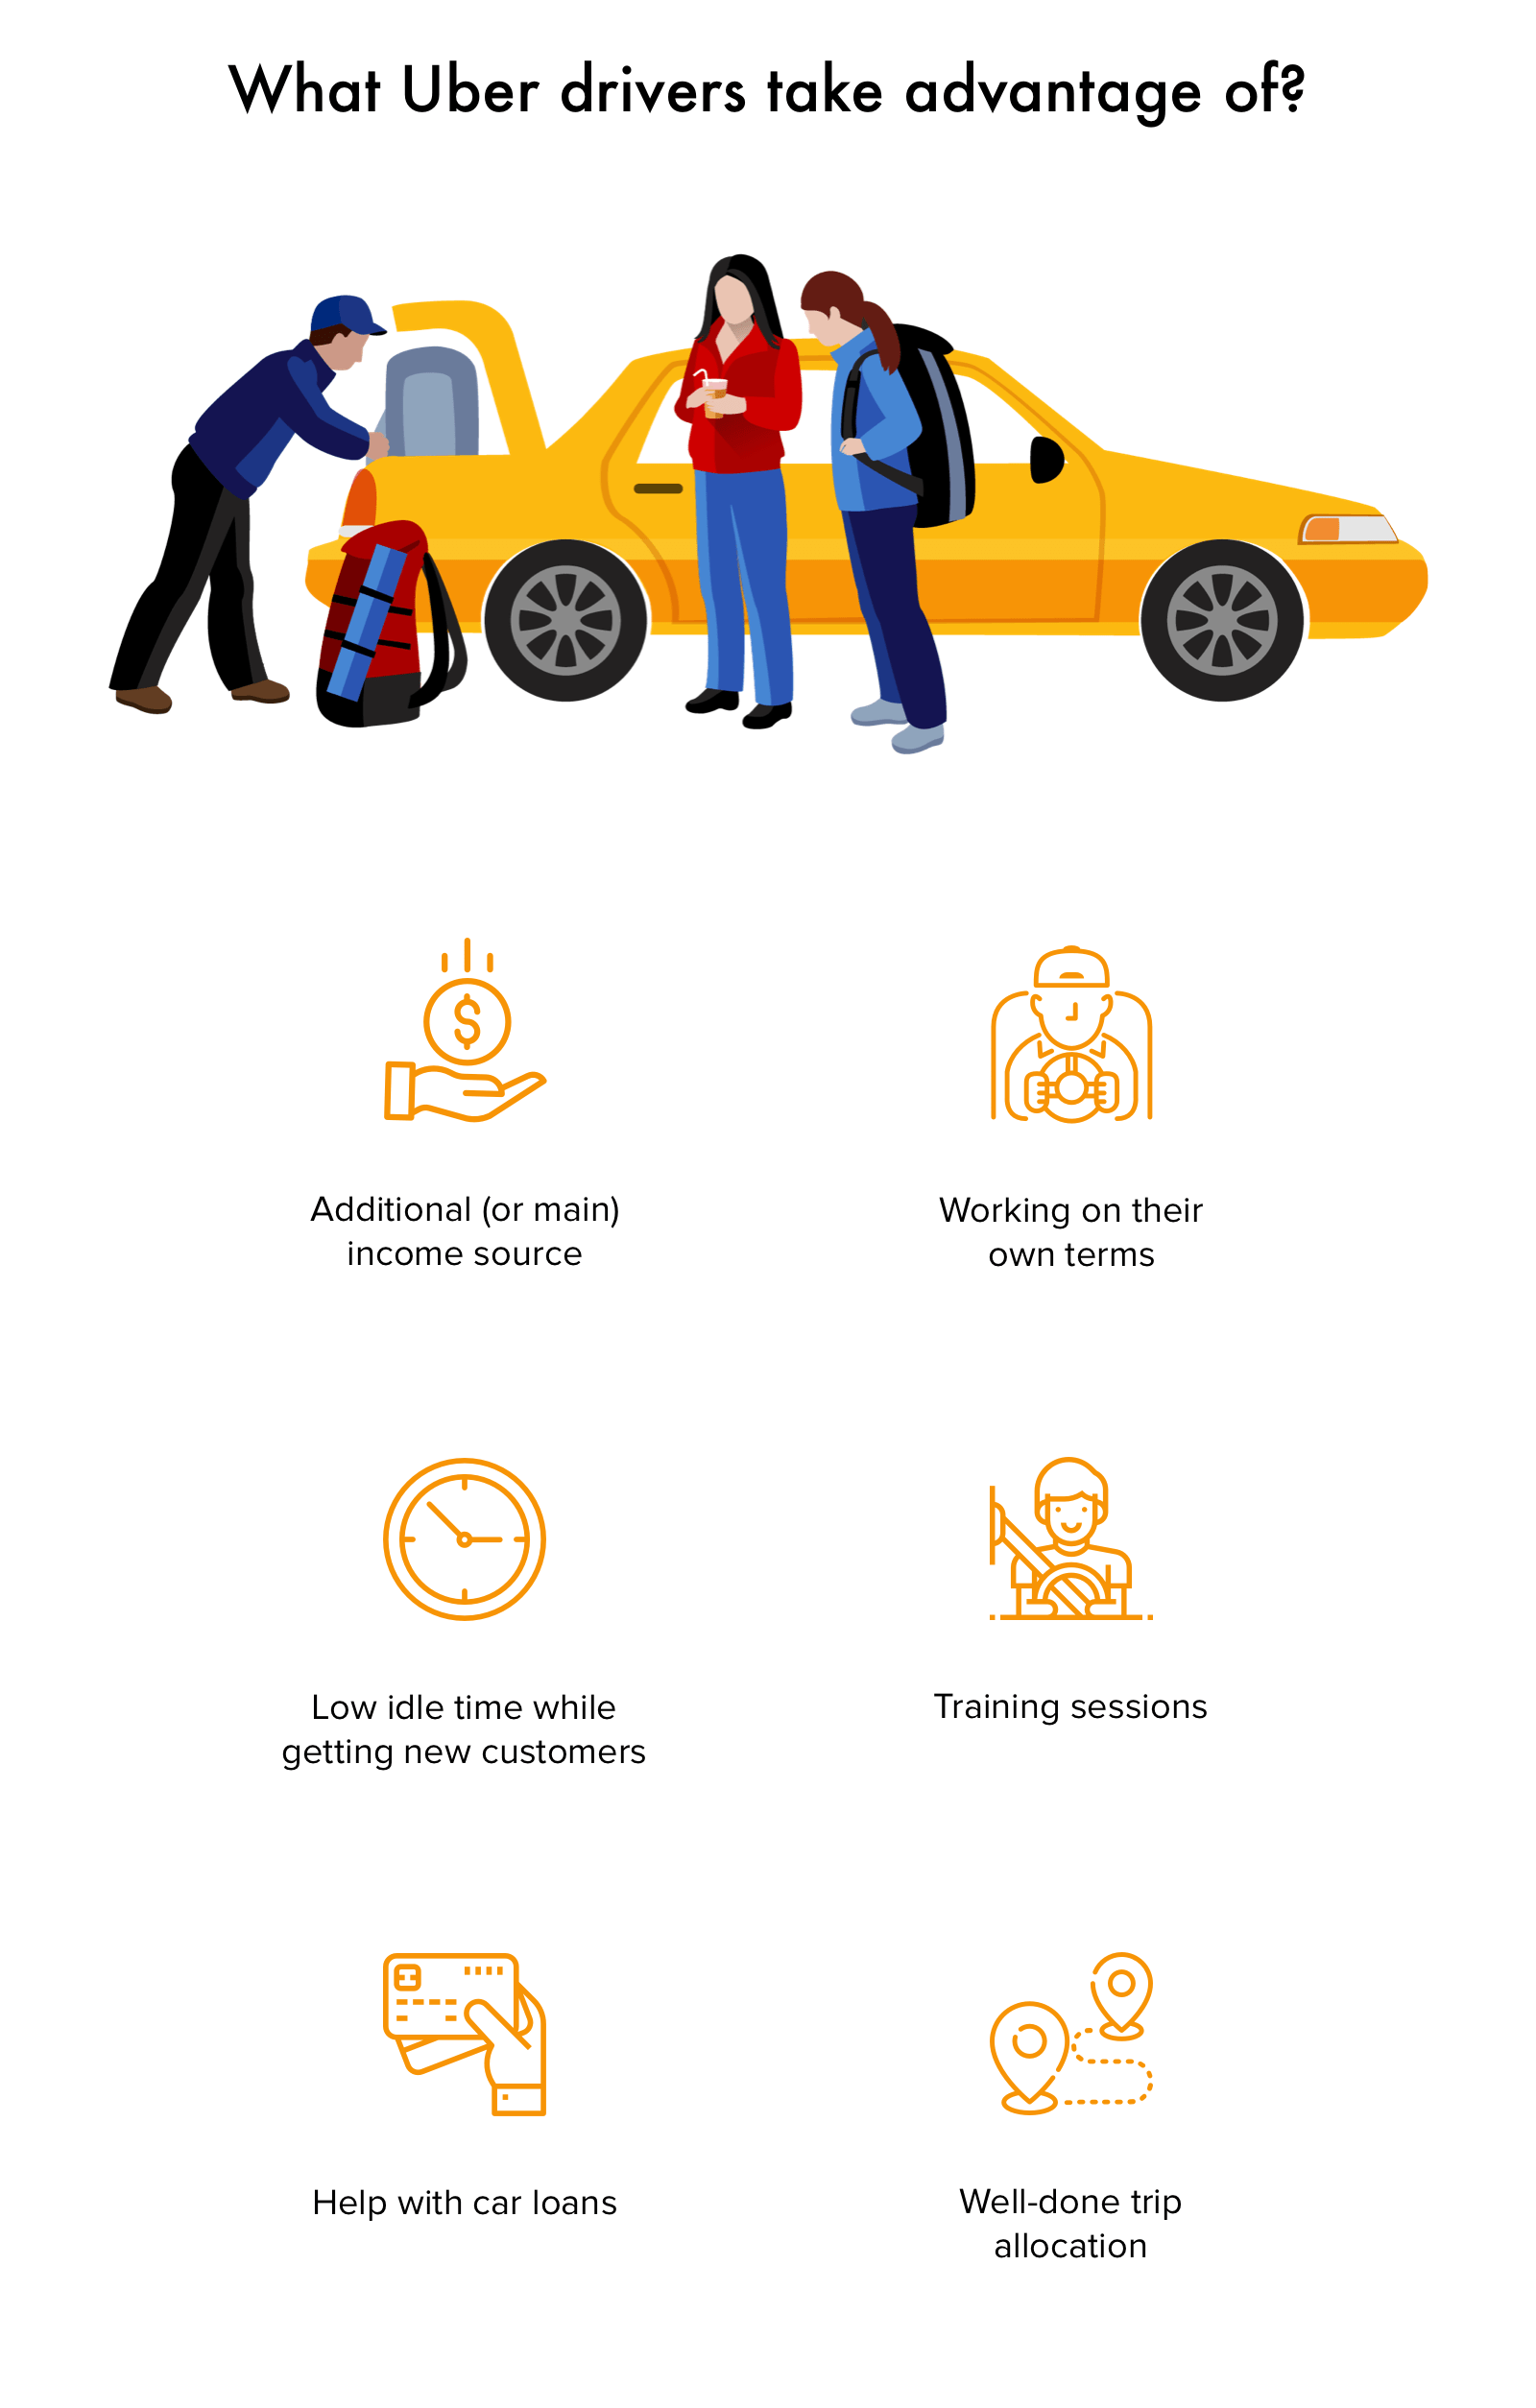 Benefits of Uber platform for drivers